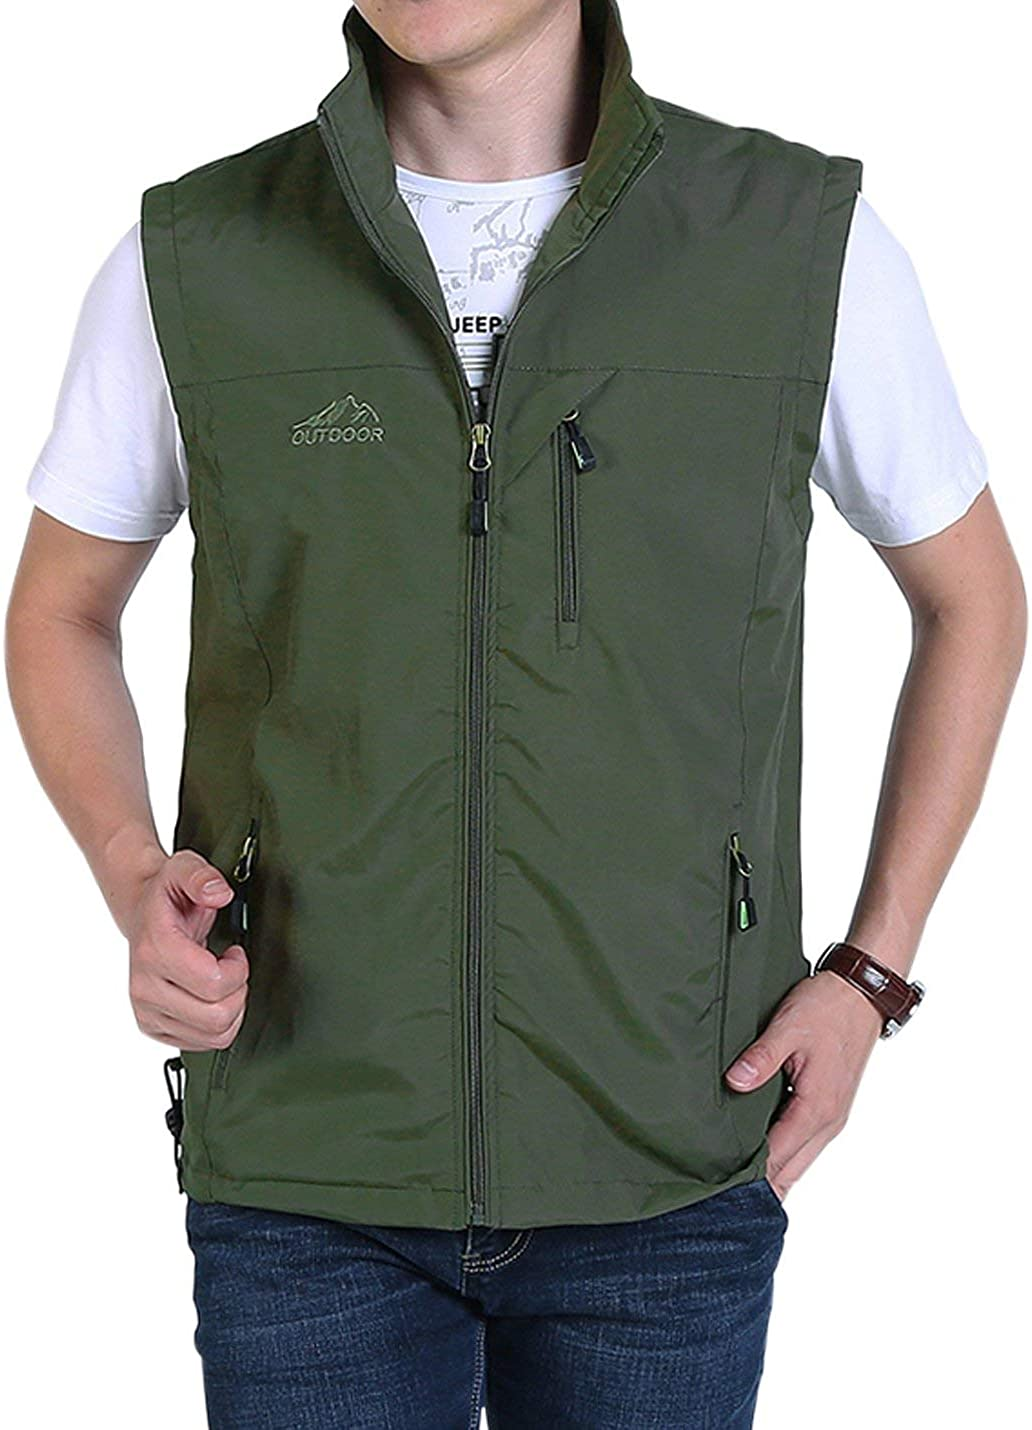 Gihuo Men's Golf Lightweight Photo Ve Safari Vest sold out Animer and price revision Travel Fishing